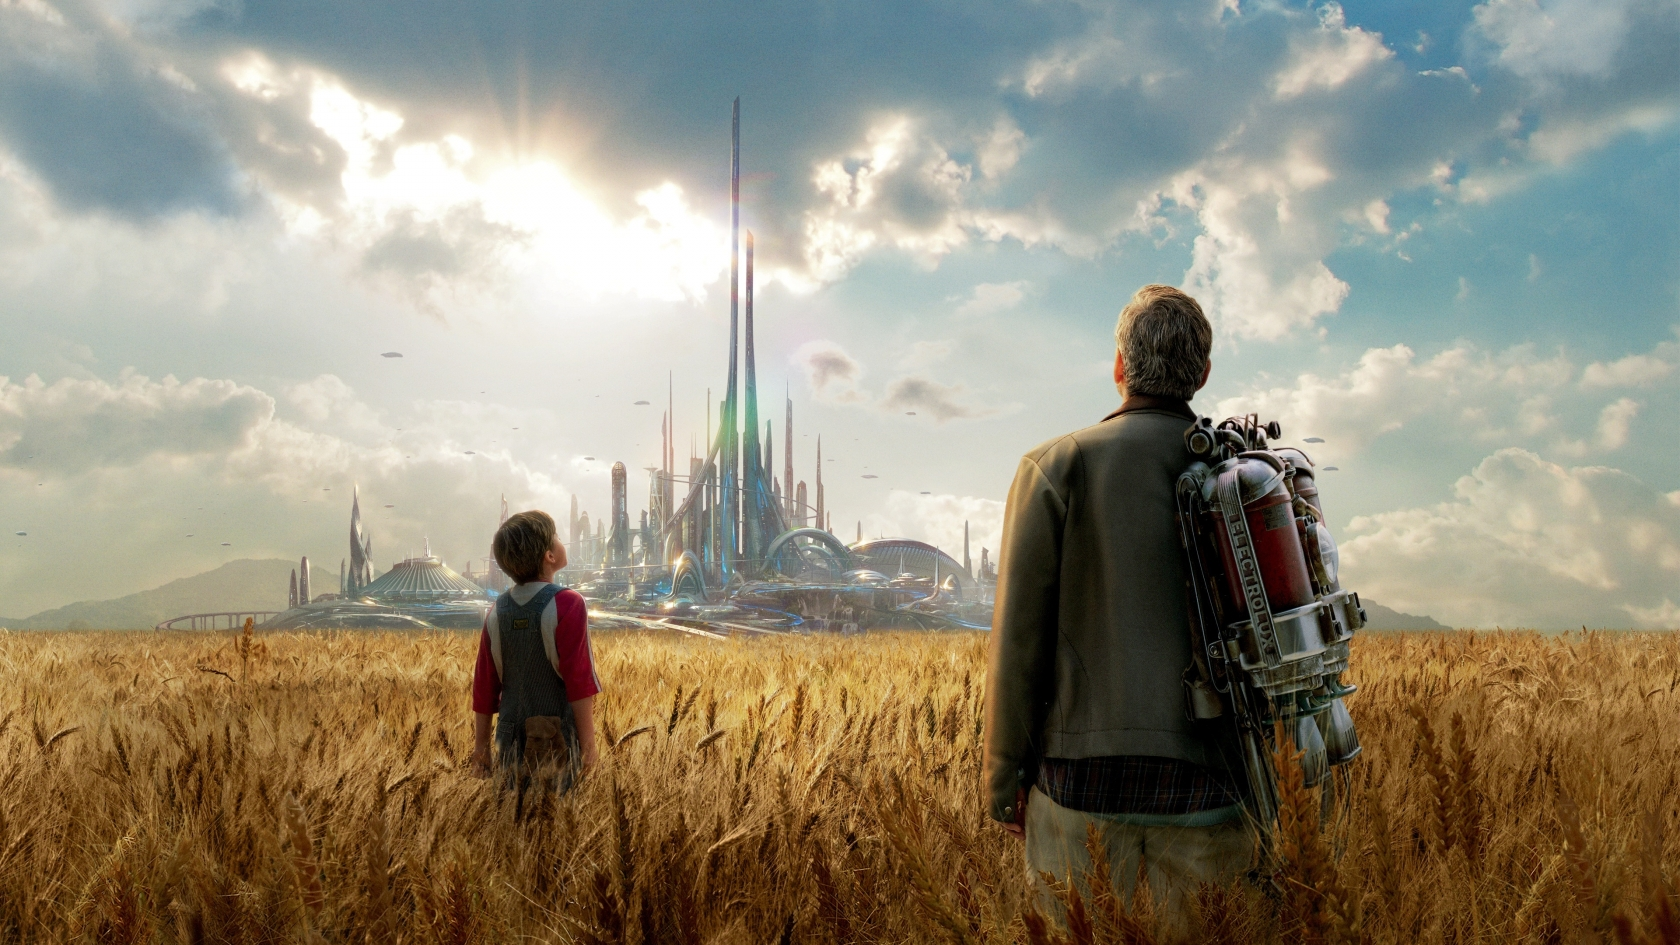 Tomorrowland Movie 2015 for 1680 x 945 HDTV resolution